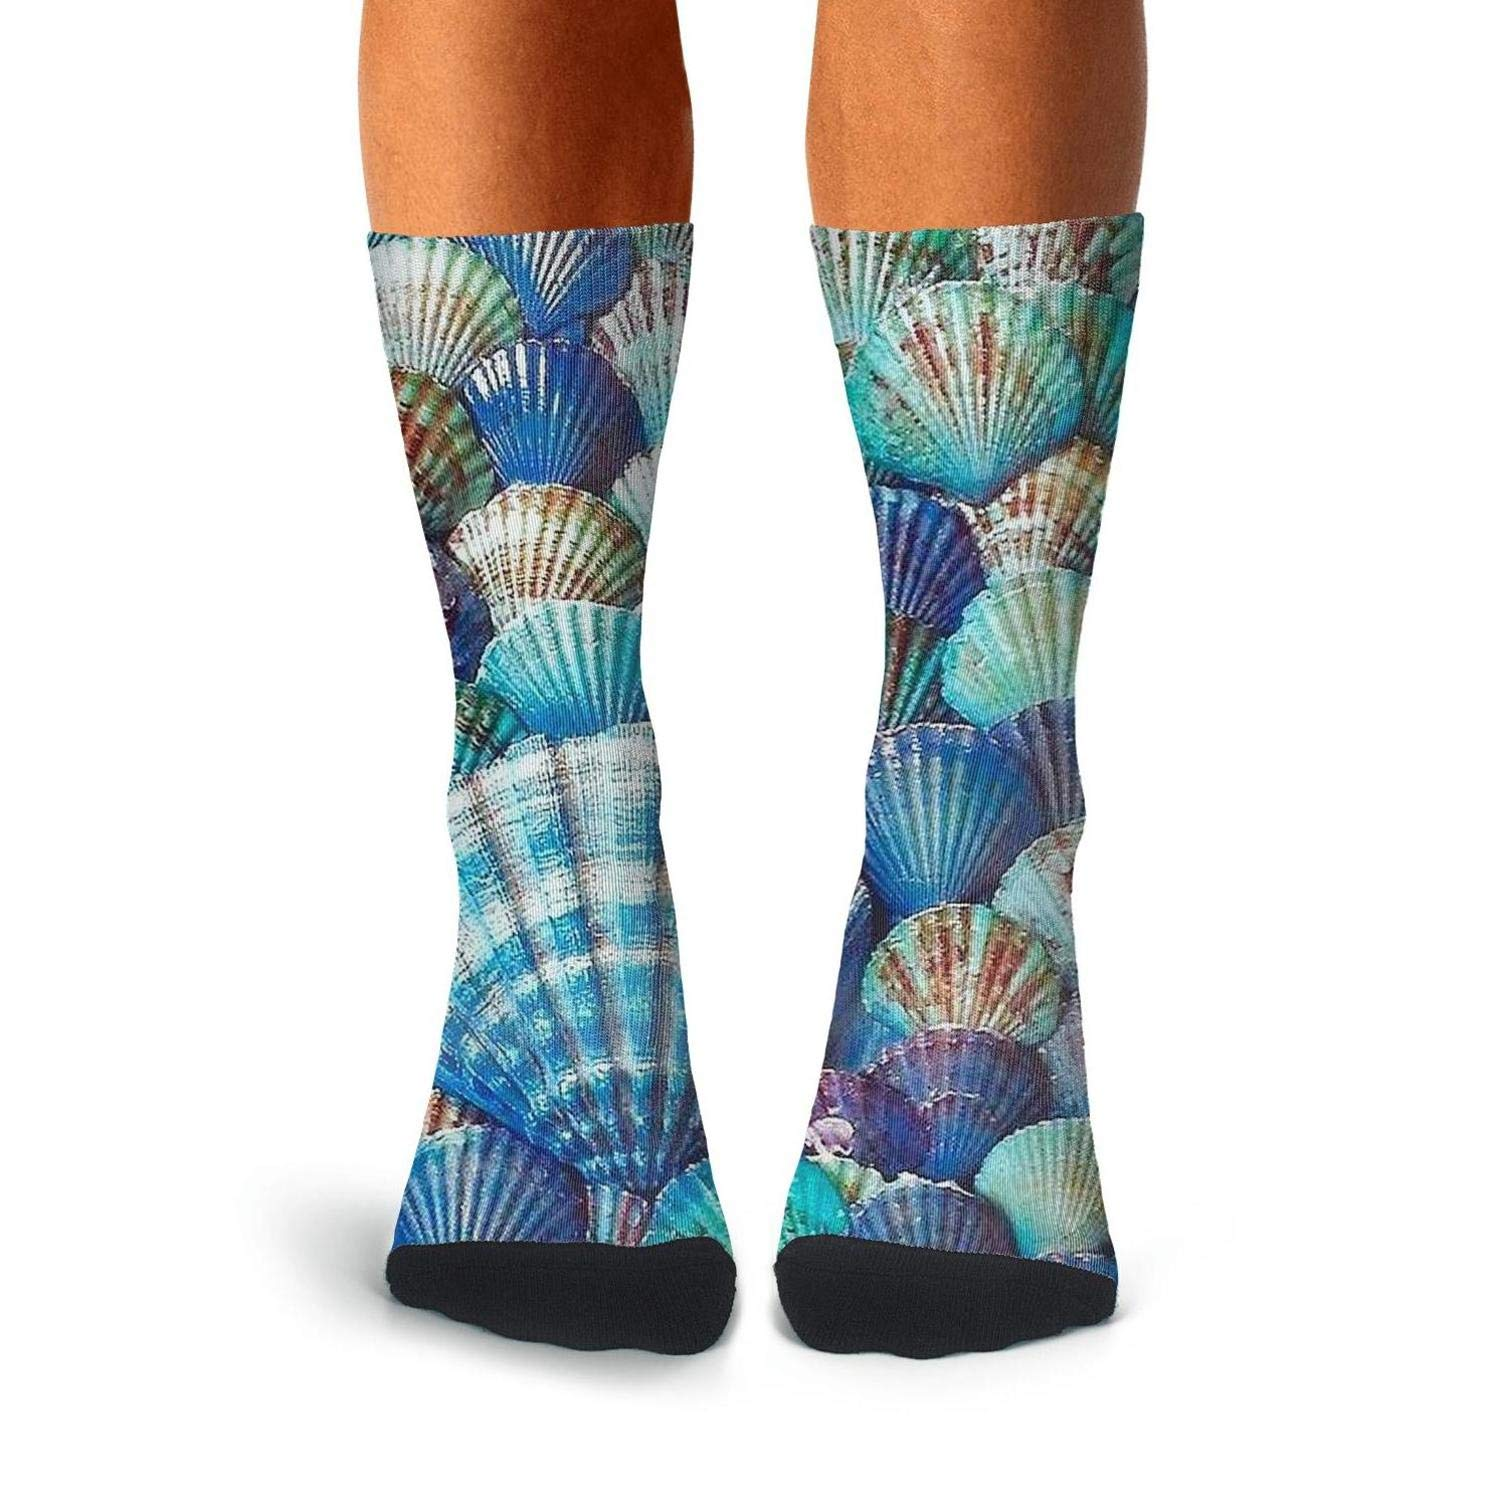 Knee High Long Stockings KCOSSH Arts Blue Shell Crazy Calf Socks Cool Crew Sock For Men